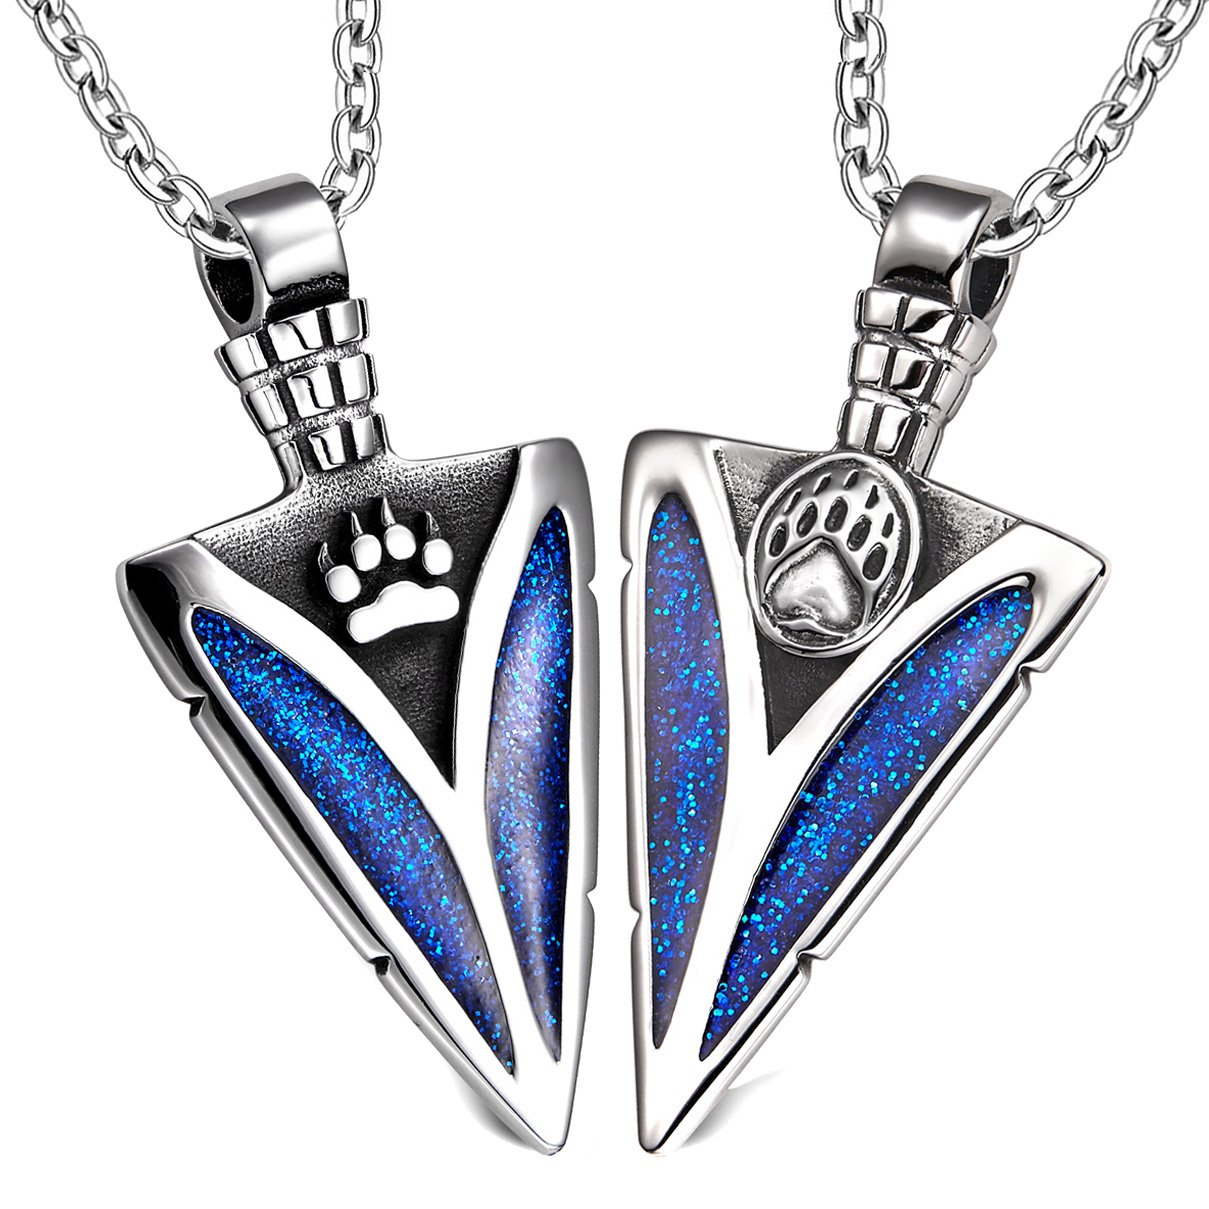 Arrowhead Wolf and Bear Paws Love Couples or BFF Set Protection Amulets Sparkling Royal Blue Necklaces